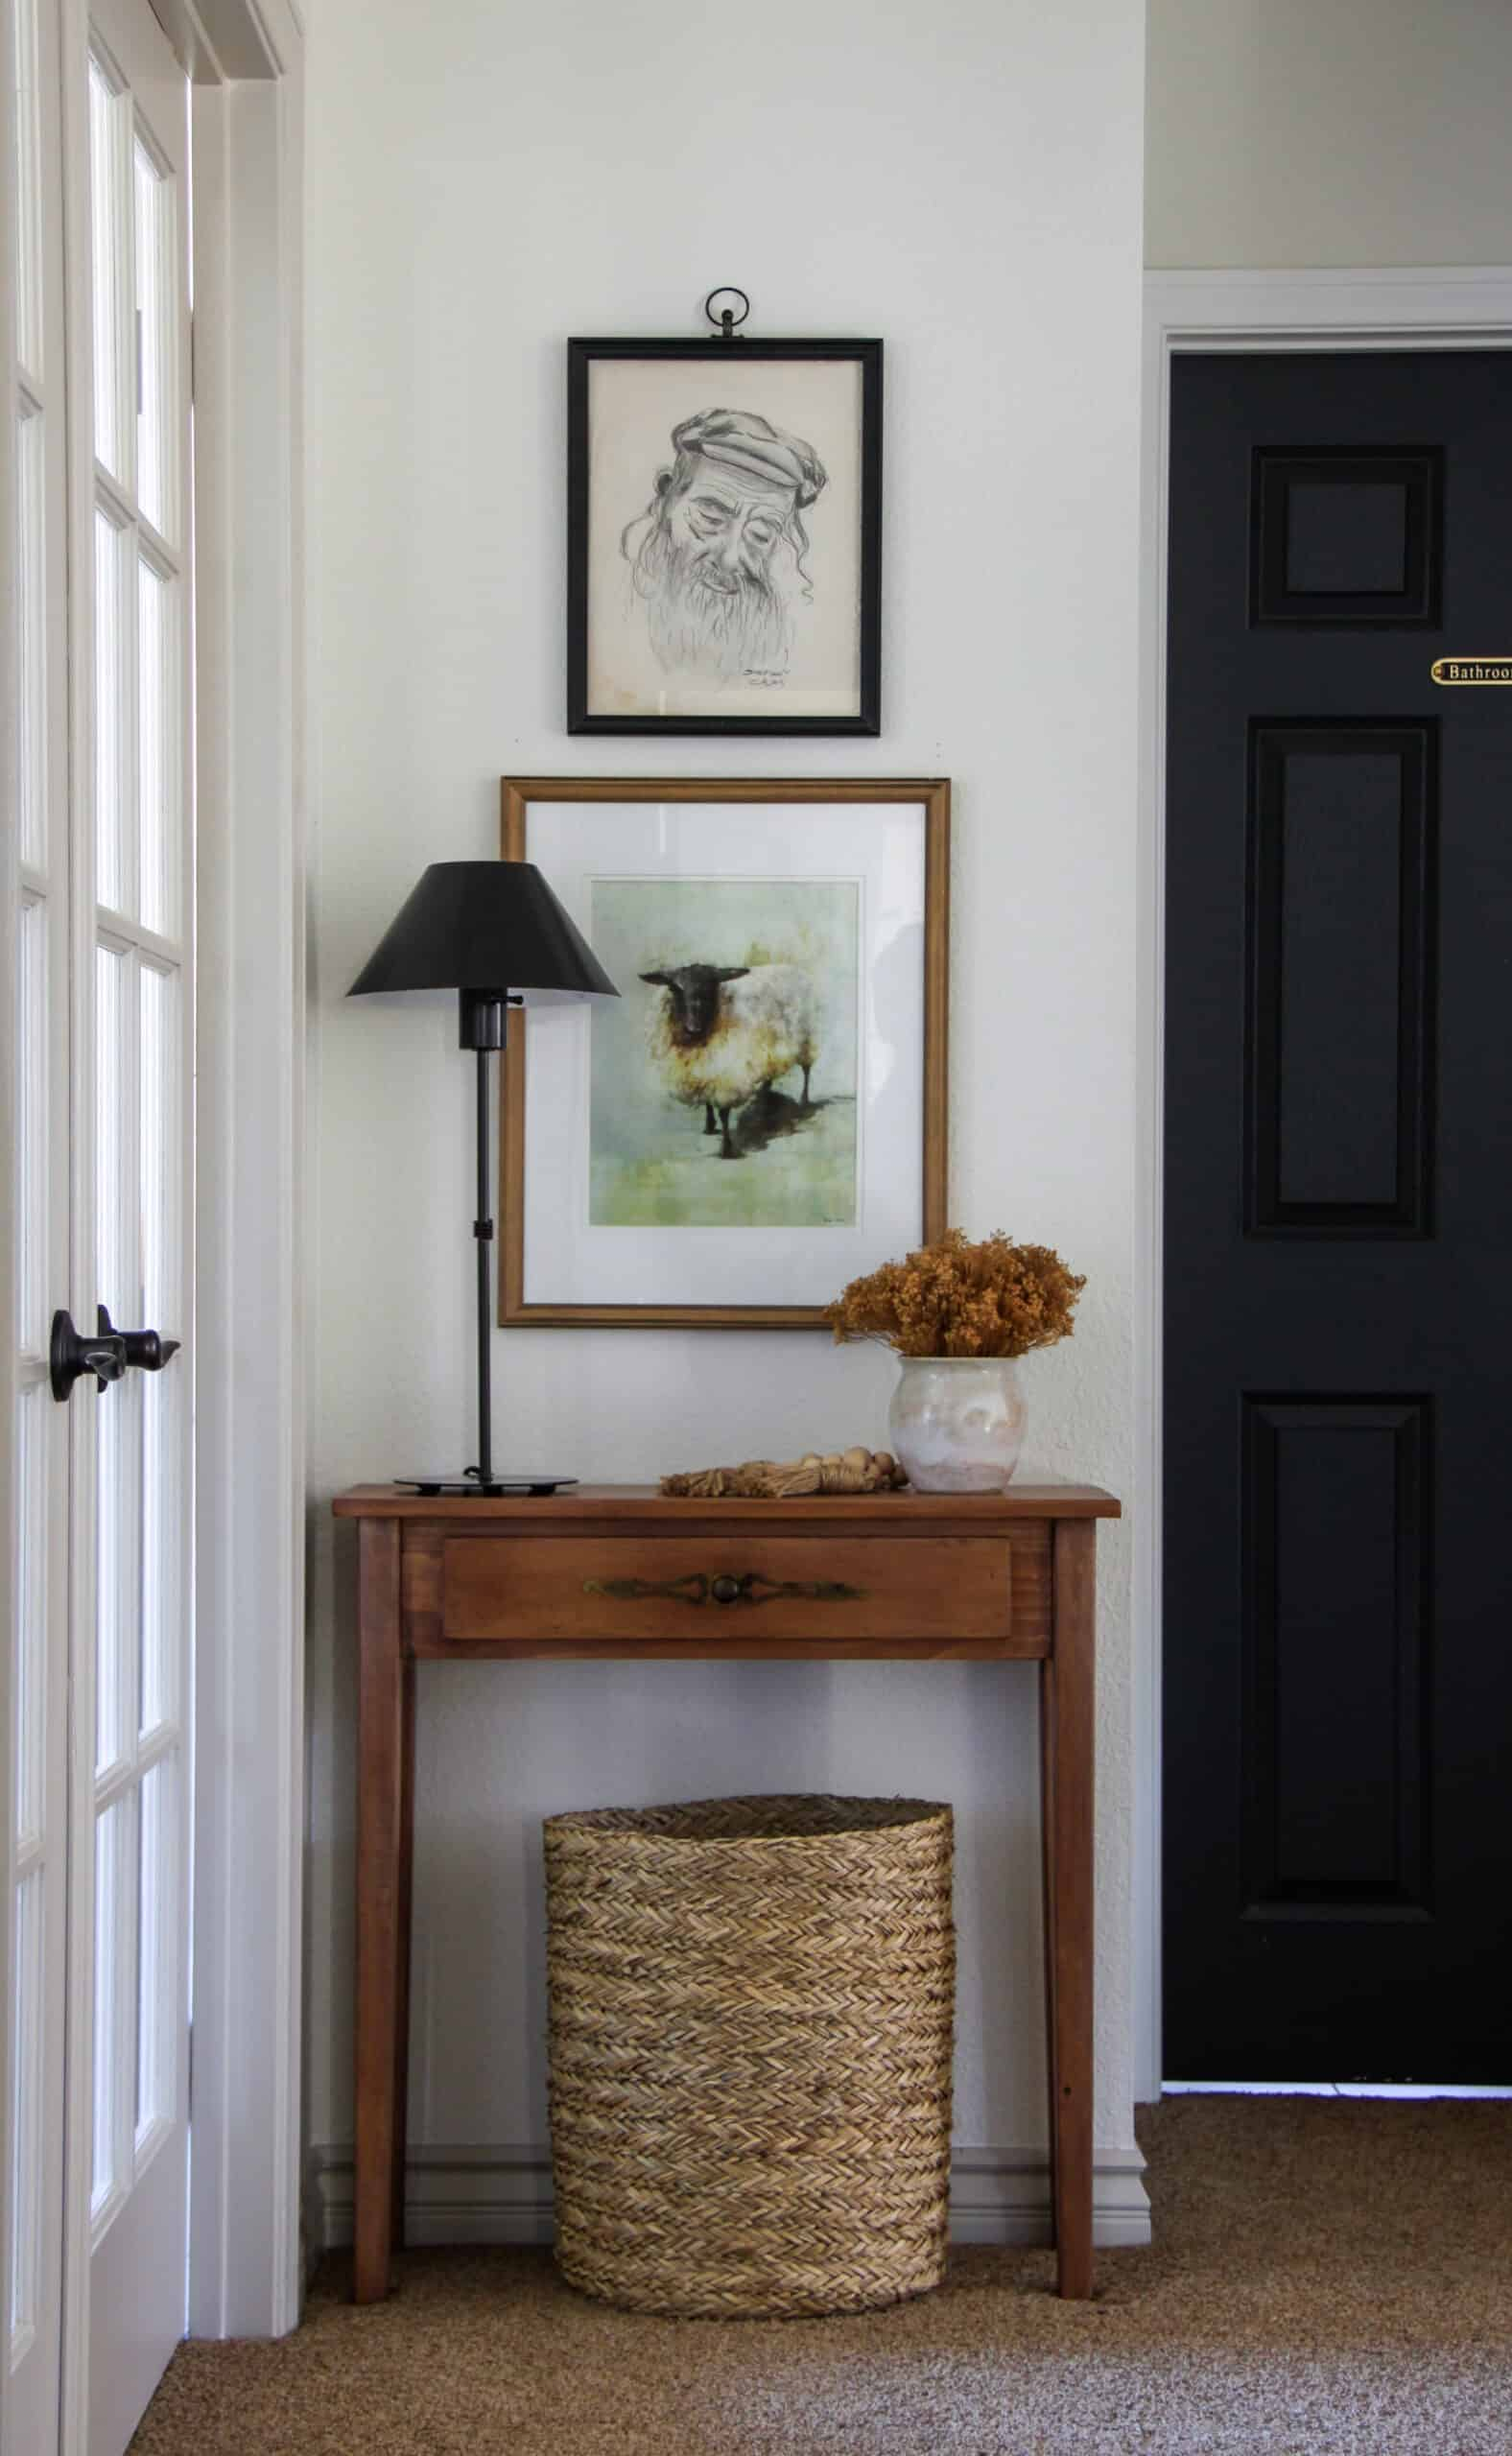 Small hallway table with black lamp and two pieces of art above.